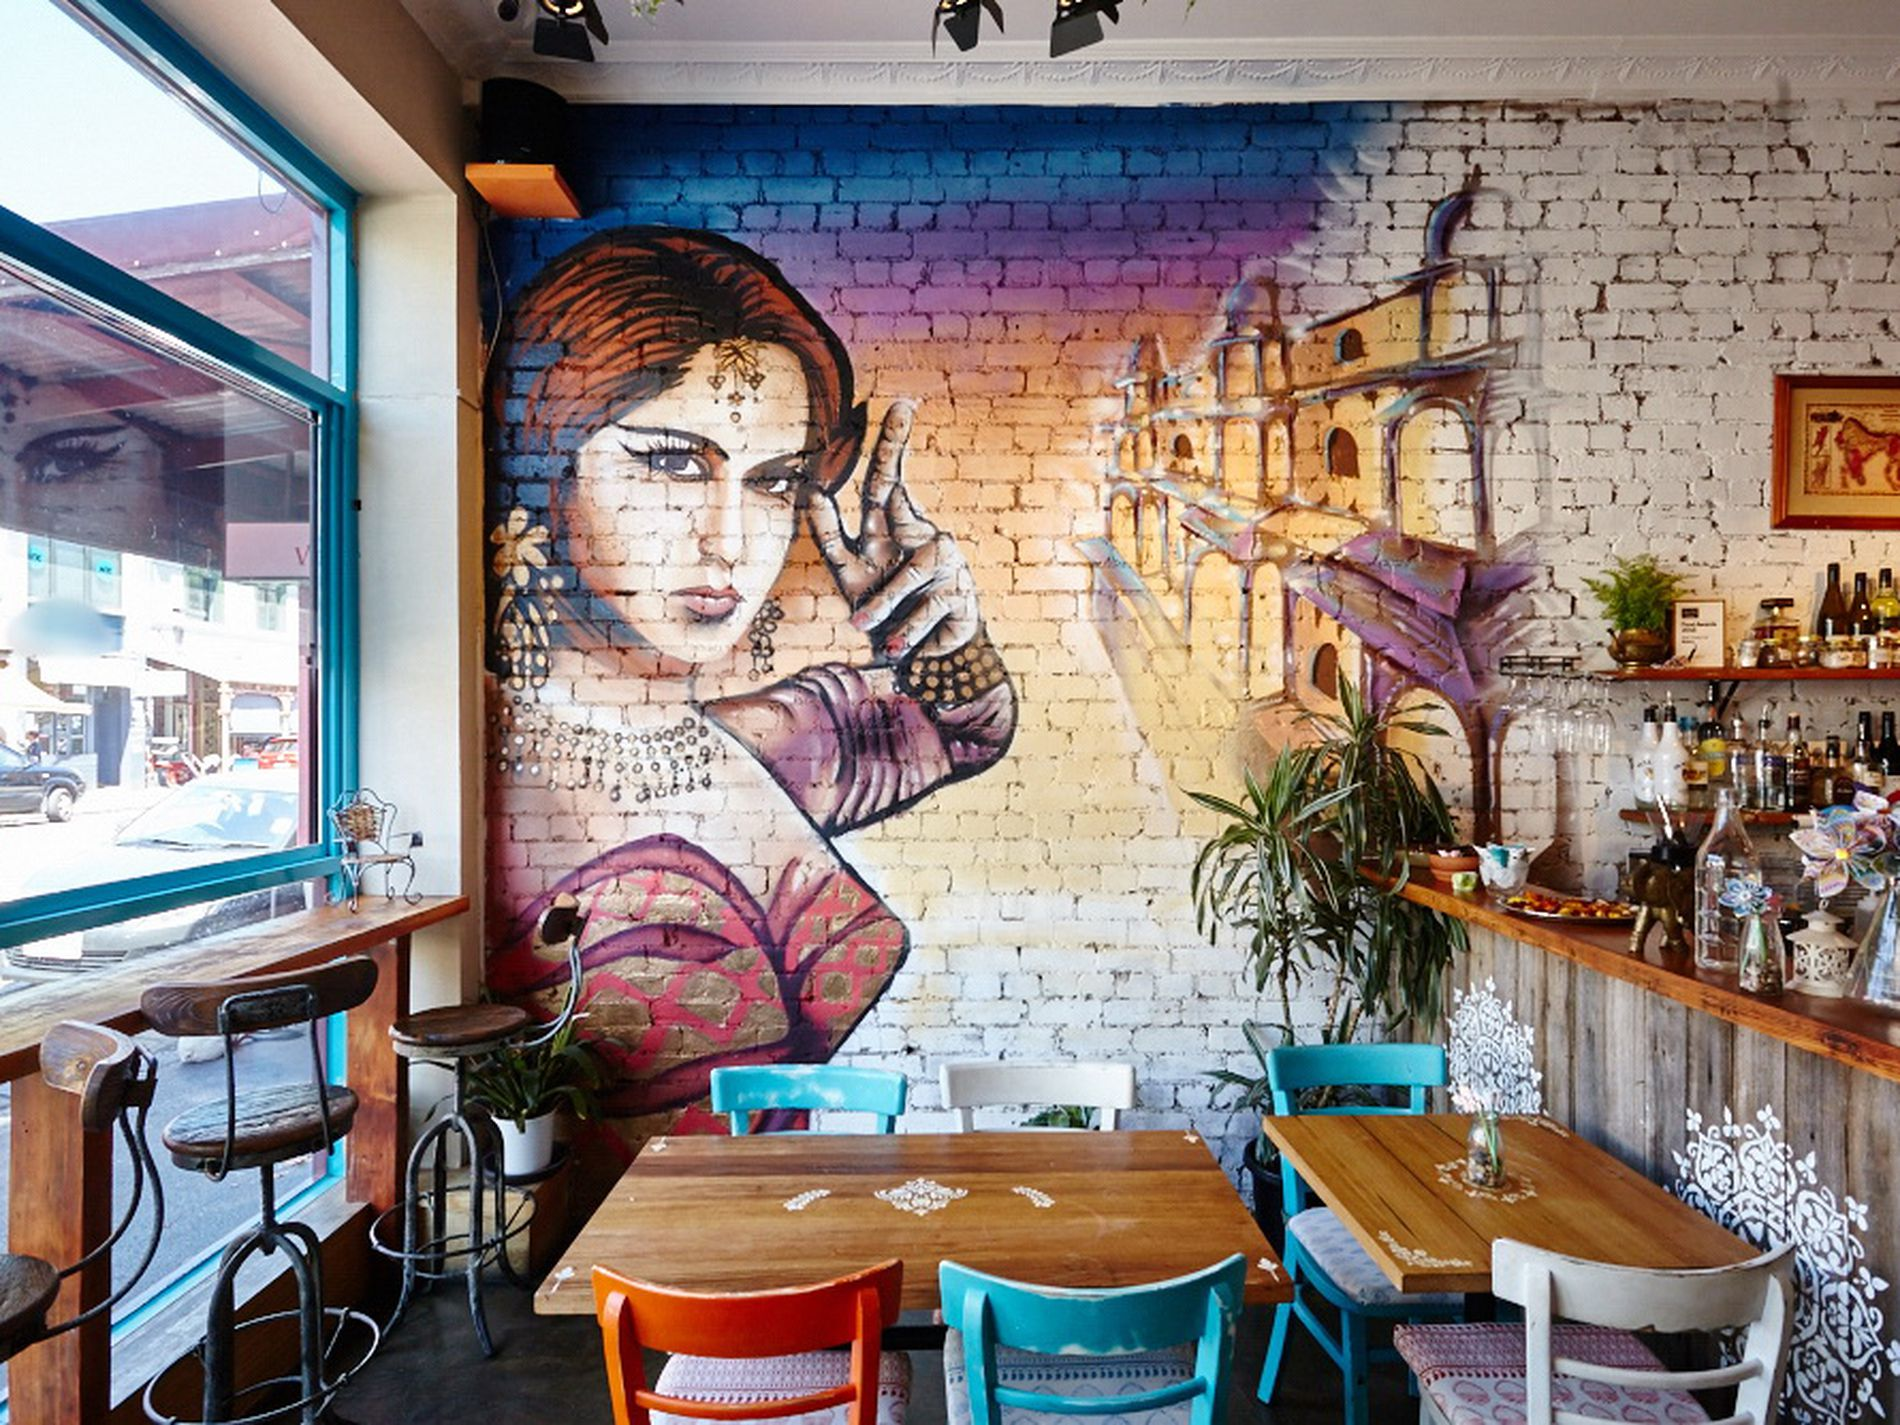 THRIVING HOSPITALITY BUSINESS FOR SALE FITZROY